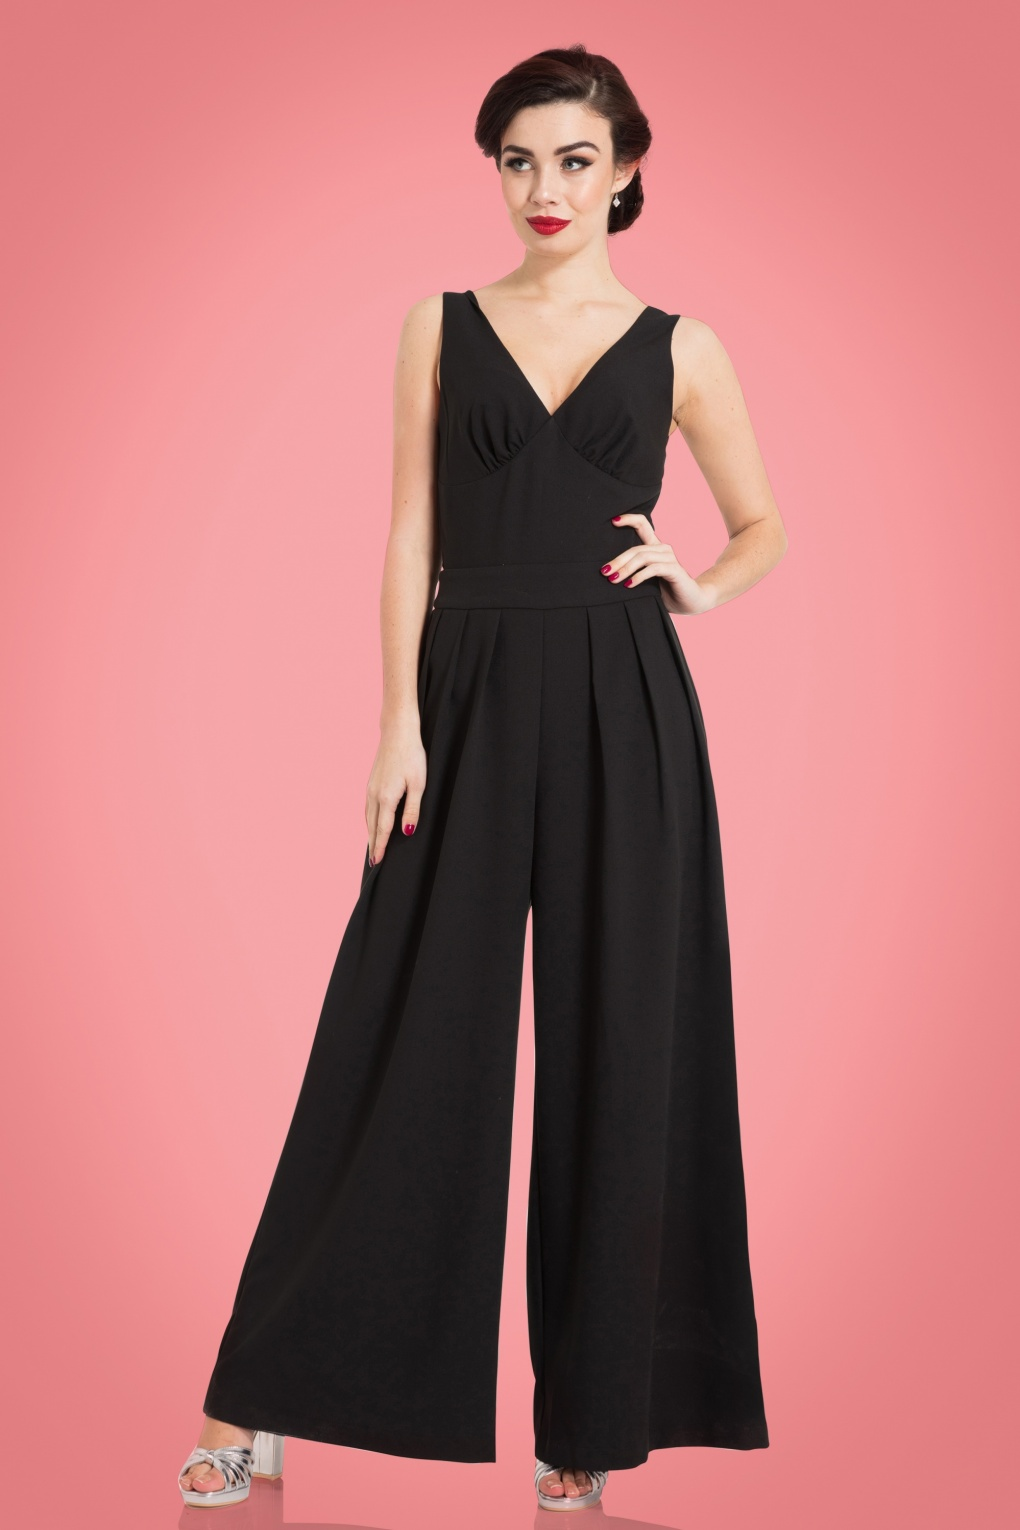 Vintage Overalls 1910s -1950s Pictures and History 50s Farah Flared Jumpsuit in Black £64.25 AT vintagedancer.com